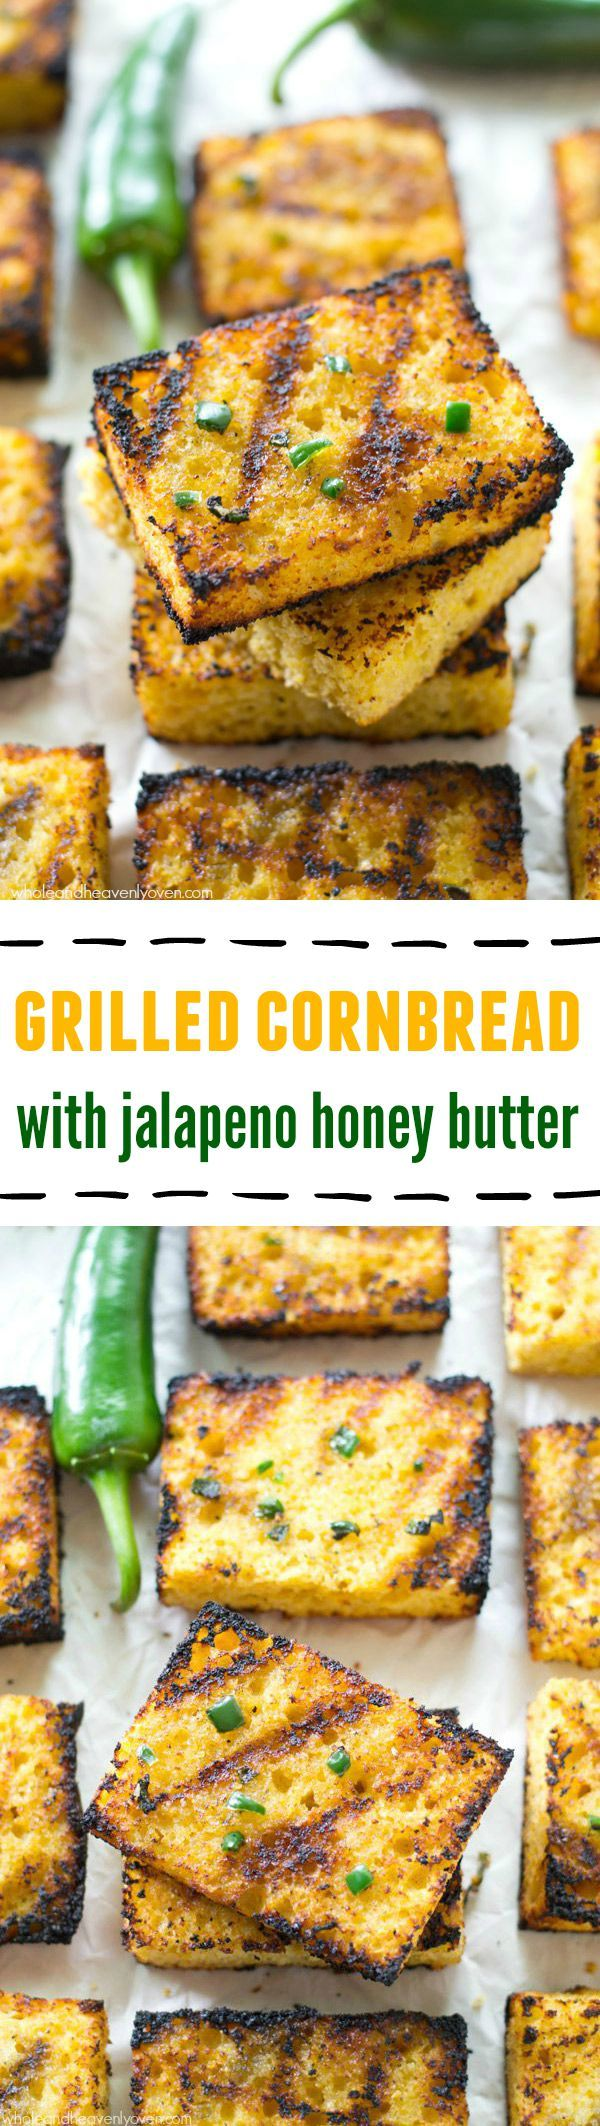 Grilled Cornbread with Jalapeno Honey Butter by wholeandheavenlyoven: Soft, irresistible homemade cornbread squares are slathered up with a kickin' jalapeno honey butter and then quickly cooked on the grill to crisp, buttery heaven. #Cornbread #Jalapeno #Honey #Grilling